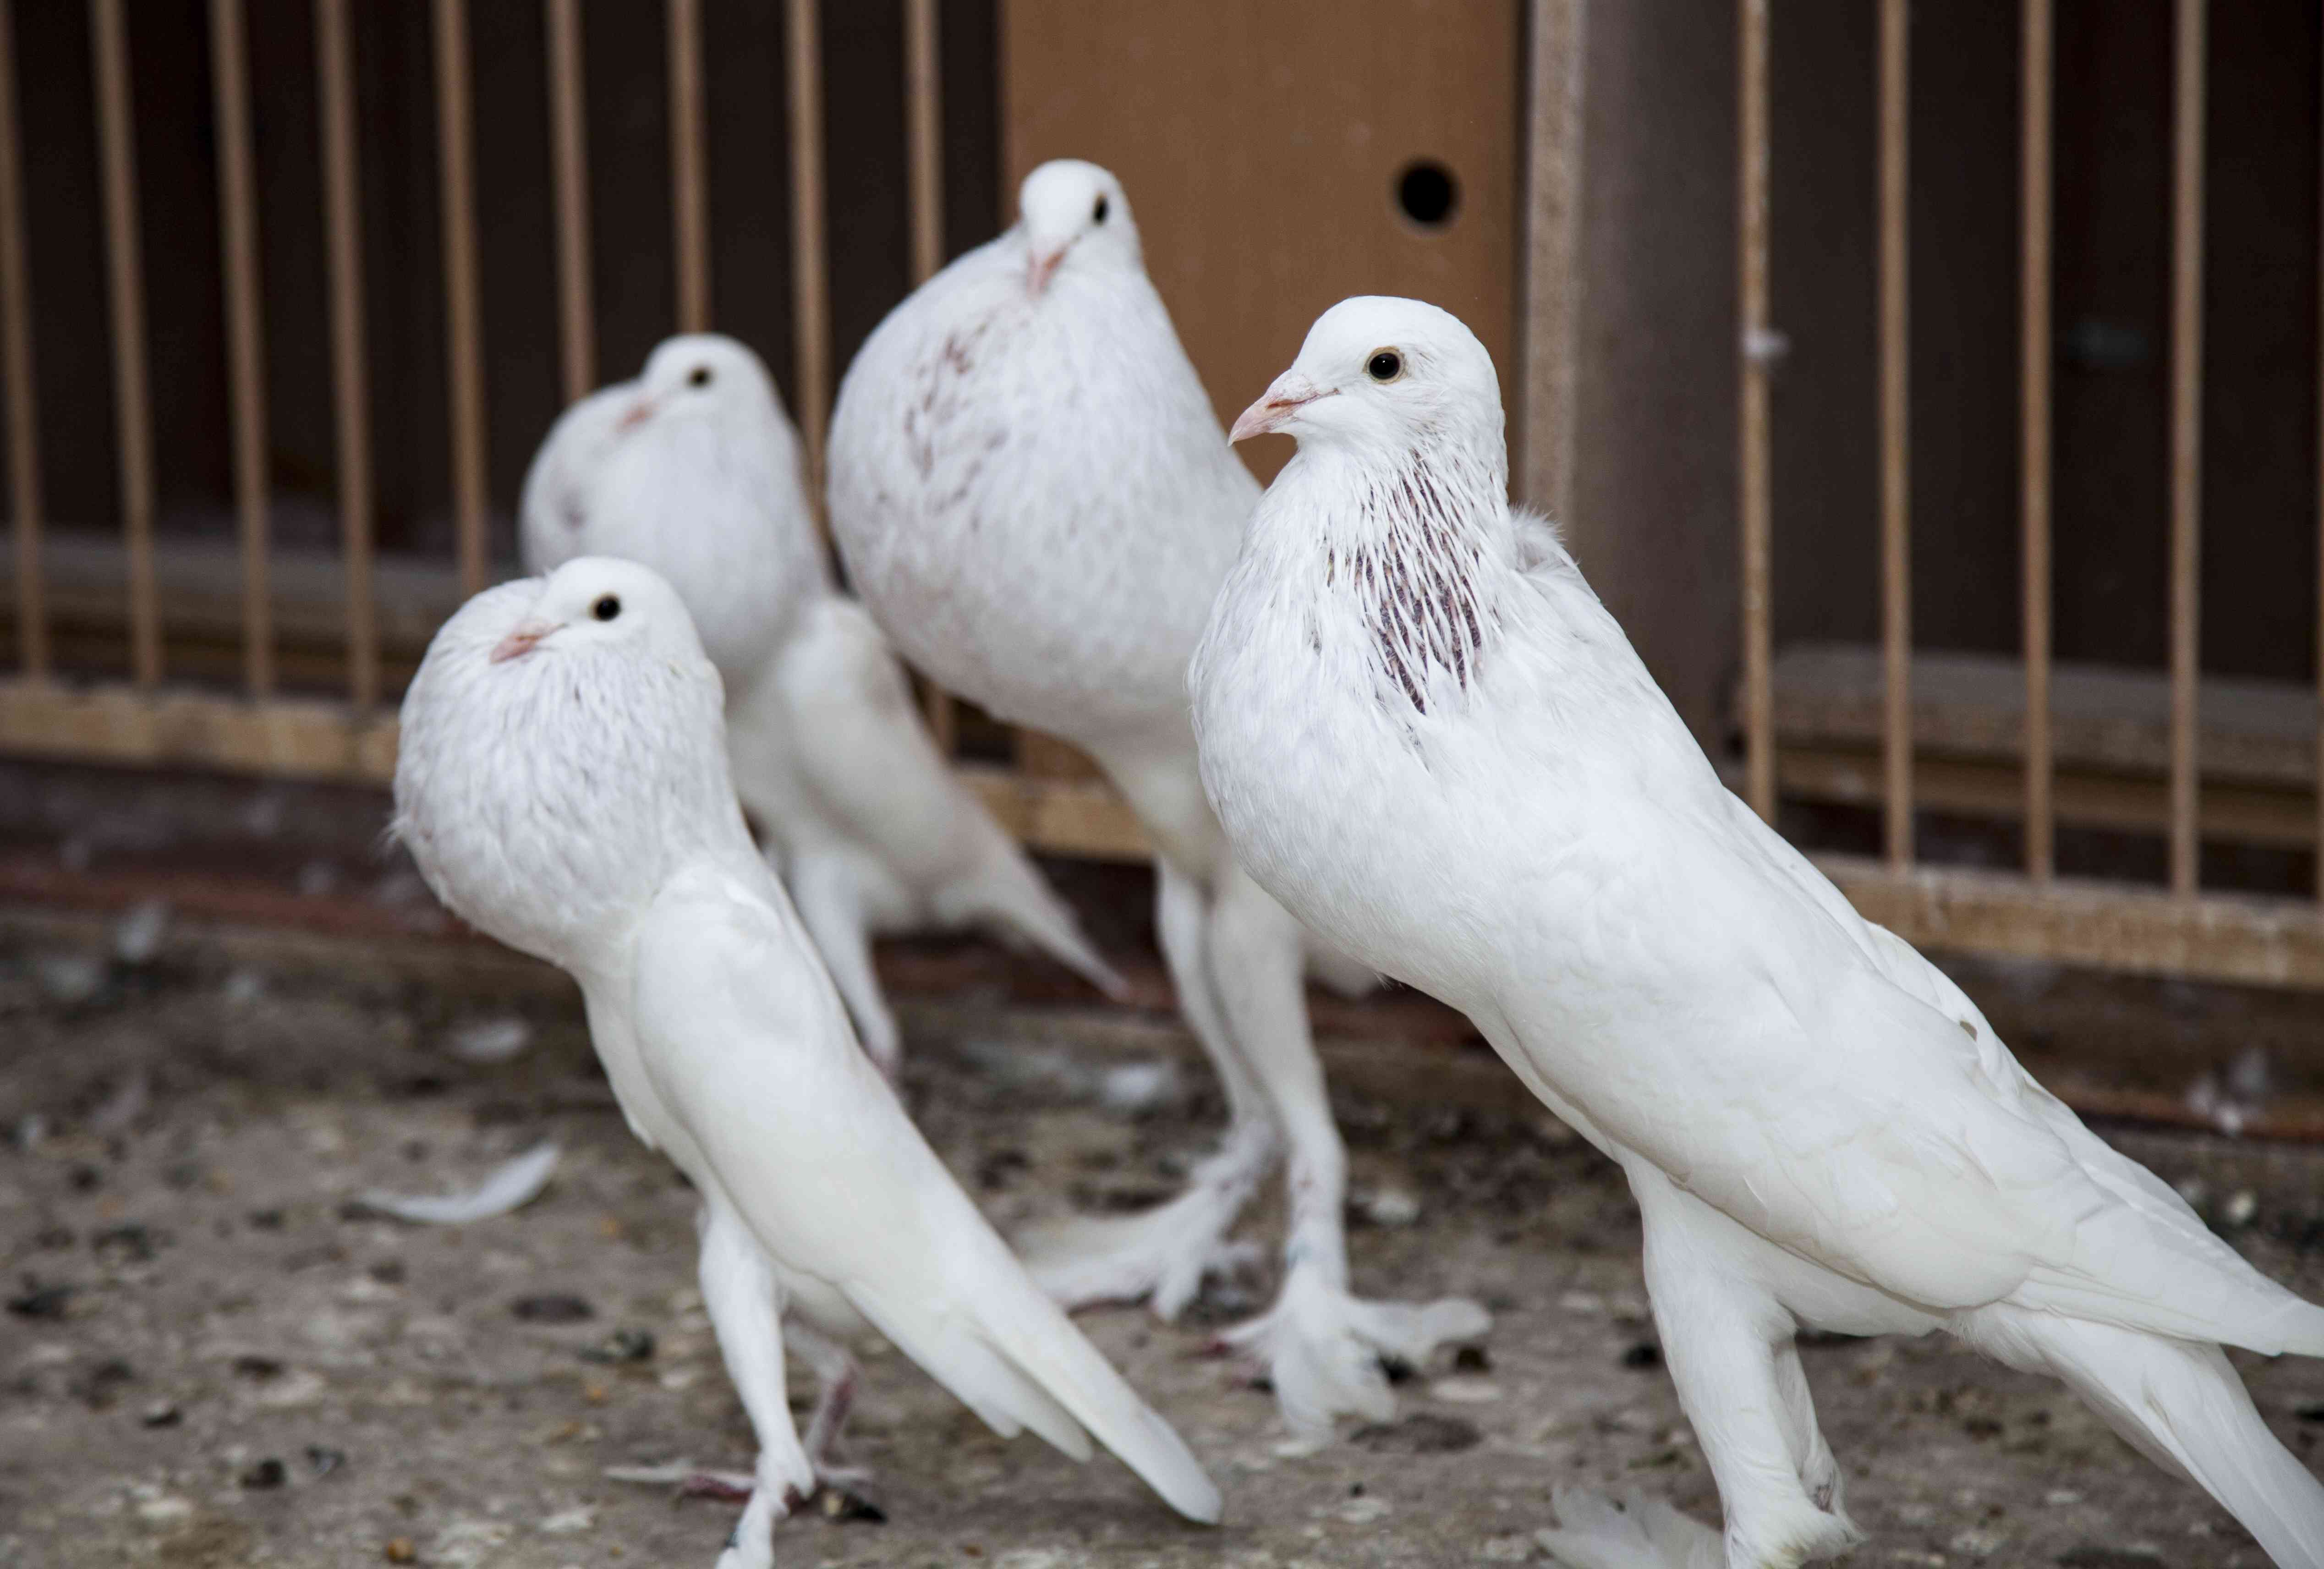 Four white pouter pigeons standing together